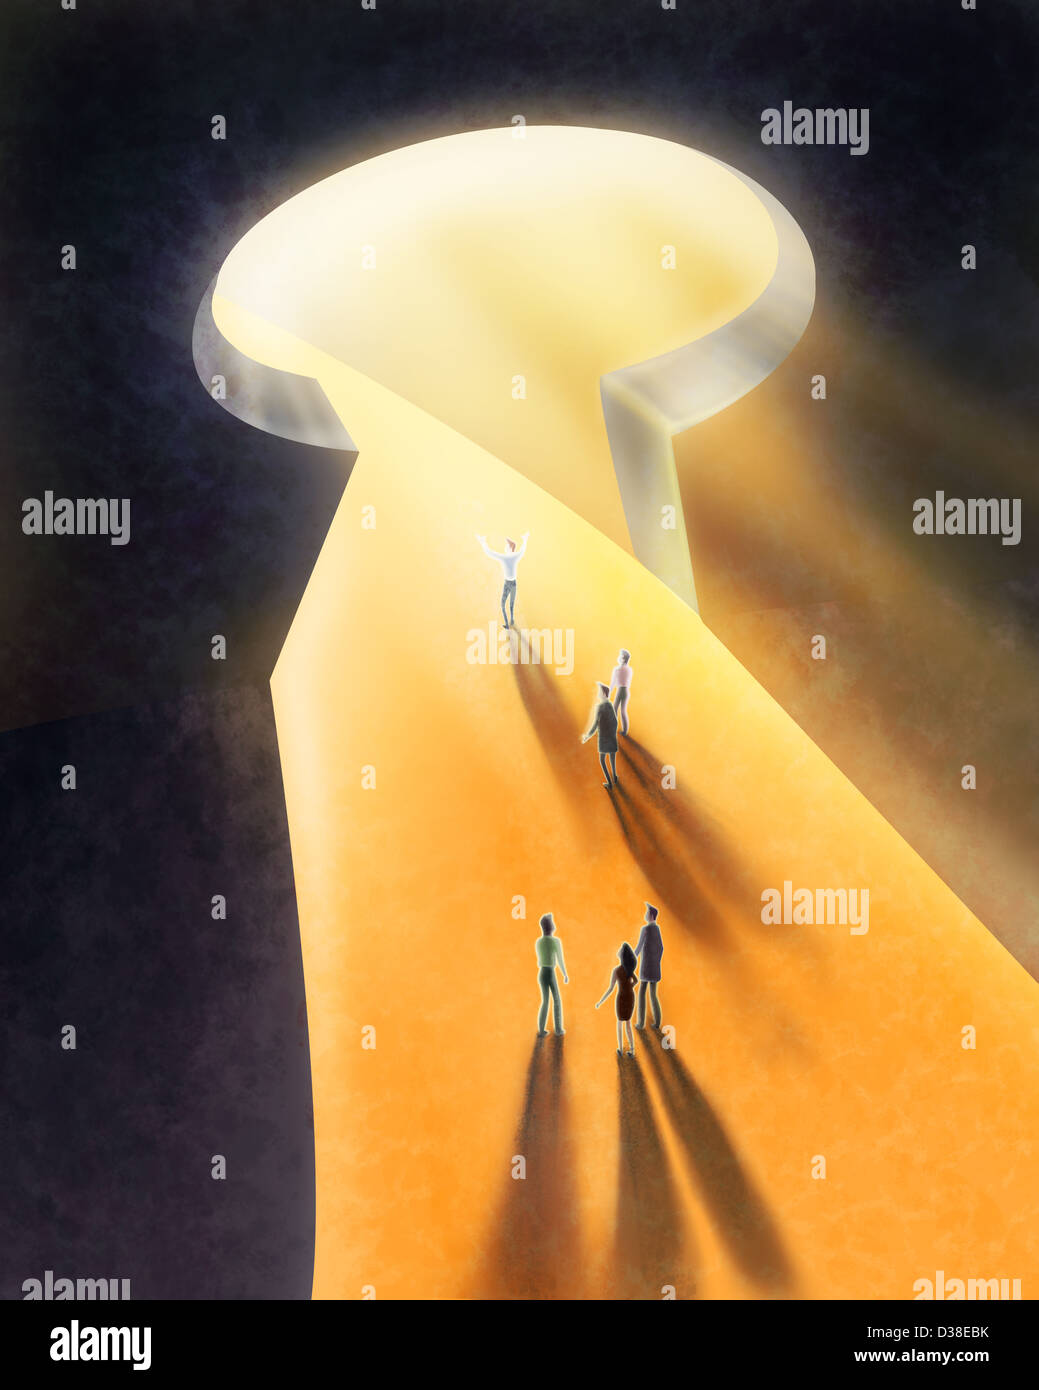 Illustrative image of light coming out from keyhole and people walking representing rays of hope - Stock Image